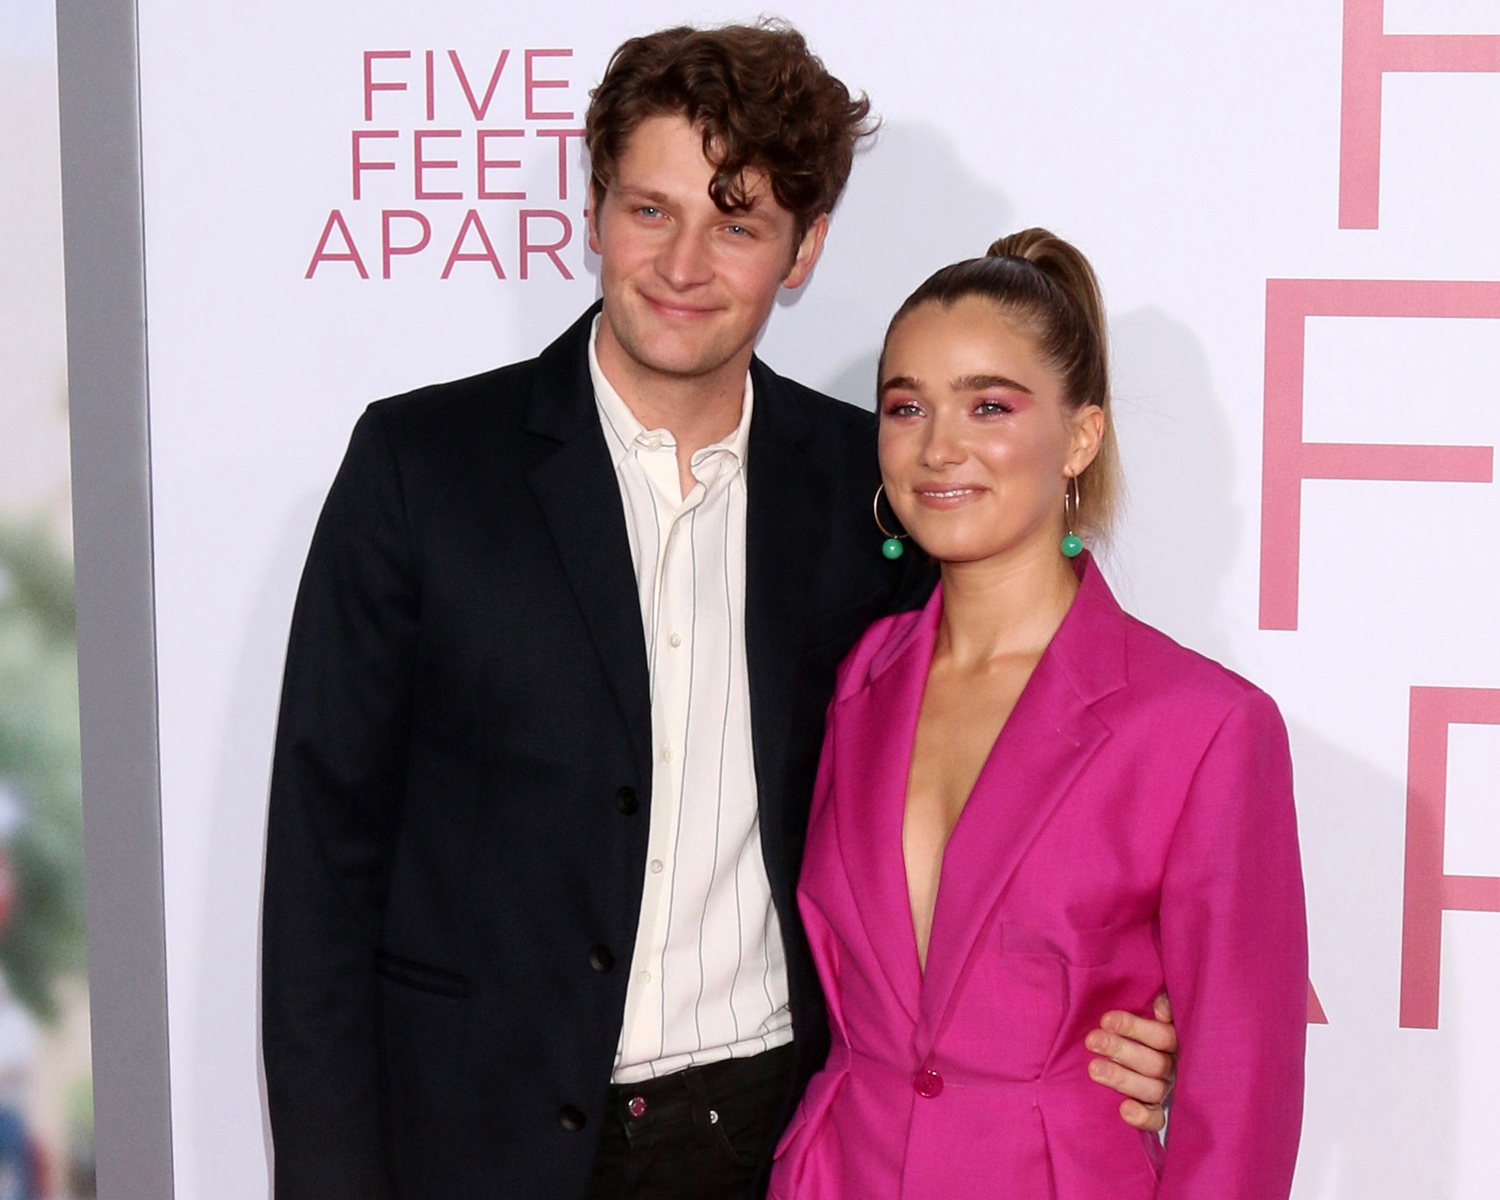 'Five Feet Apart' Actress Haley Lu Richardson Proposed to Boyfriend Brett Dier: Here's the Story